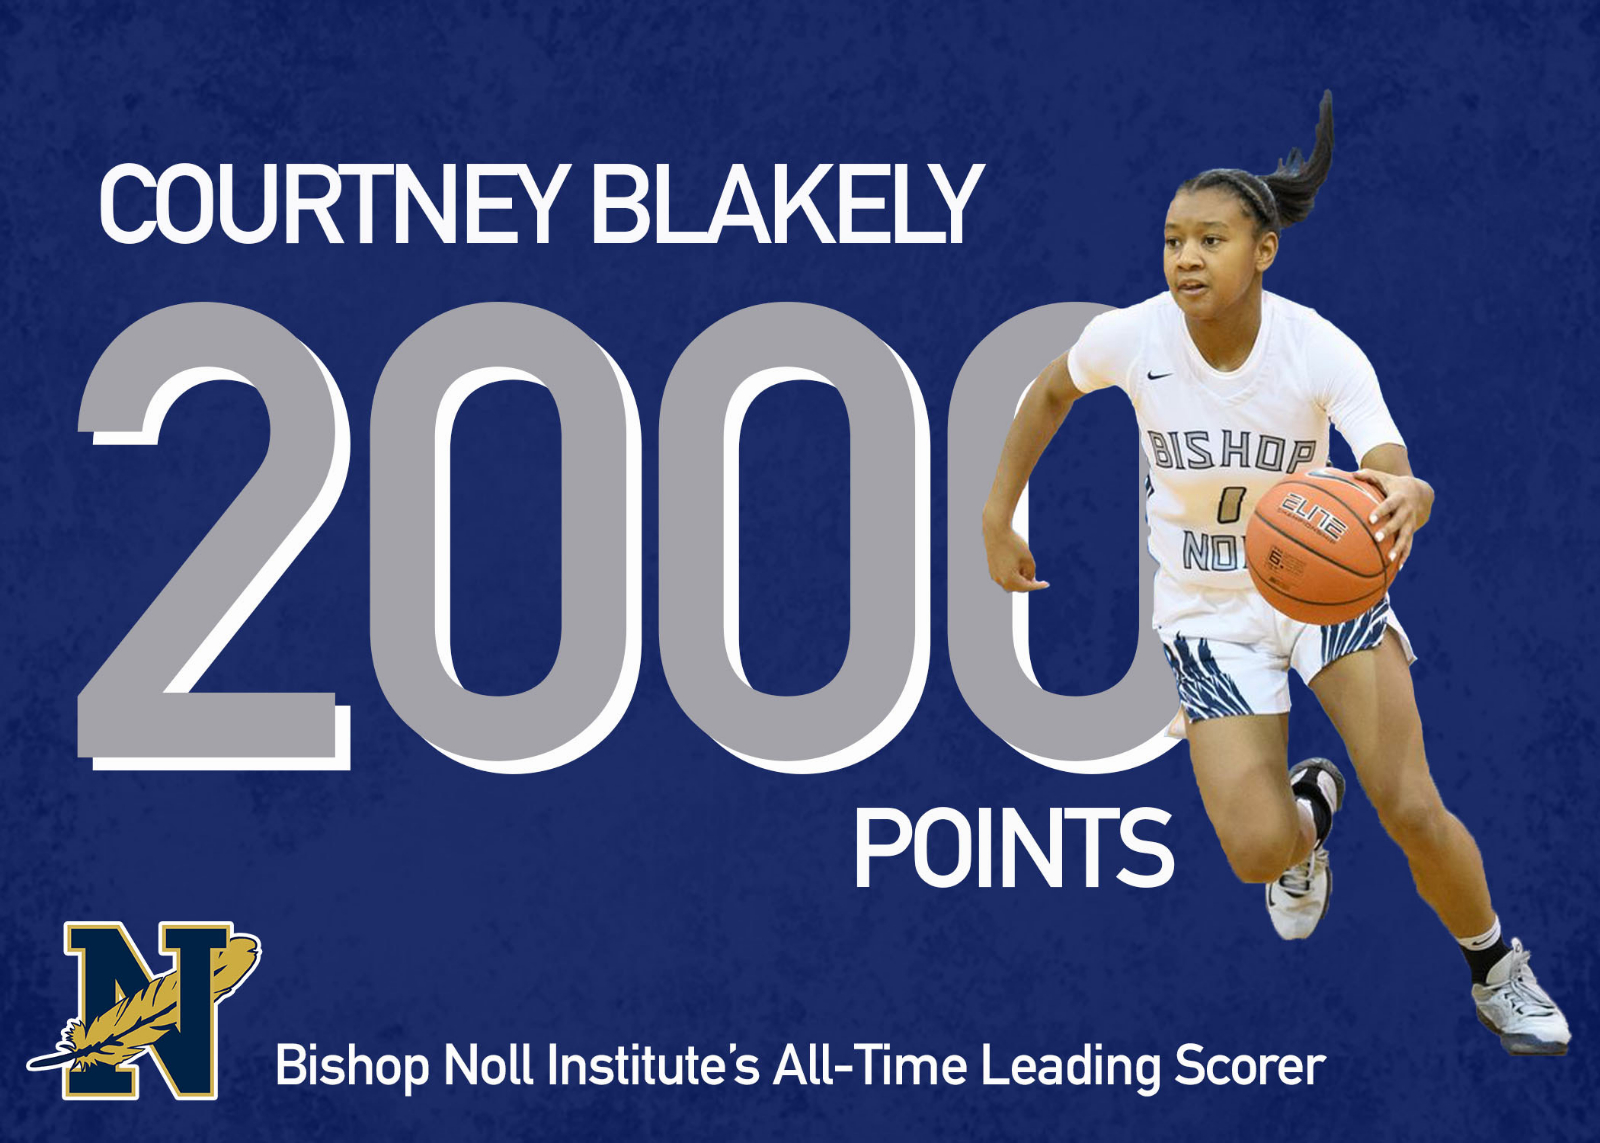 Courtney Blakely reaches 2,000 points!